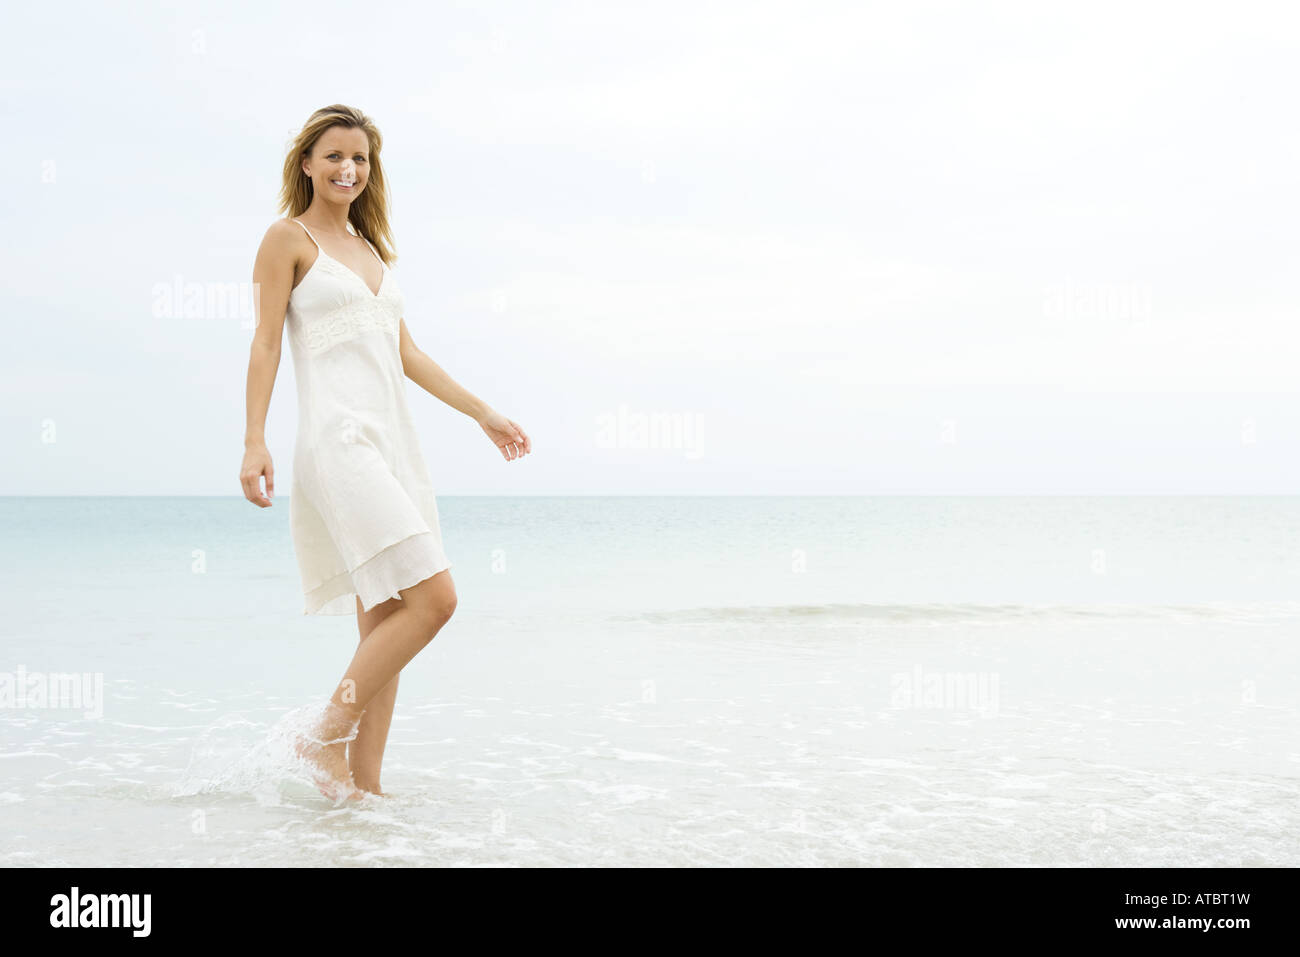 Young woman in sundress walking in shallow water, smiling at camera Stock Photo